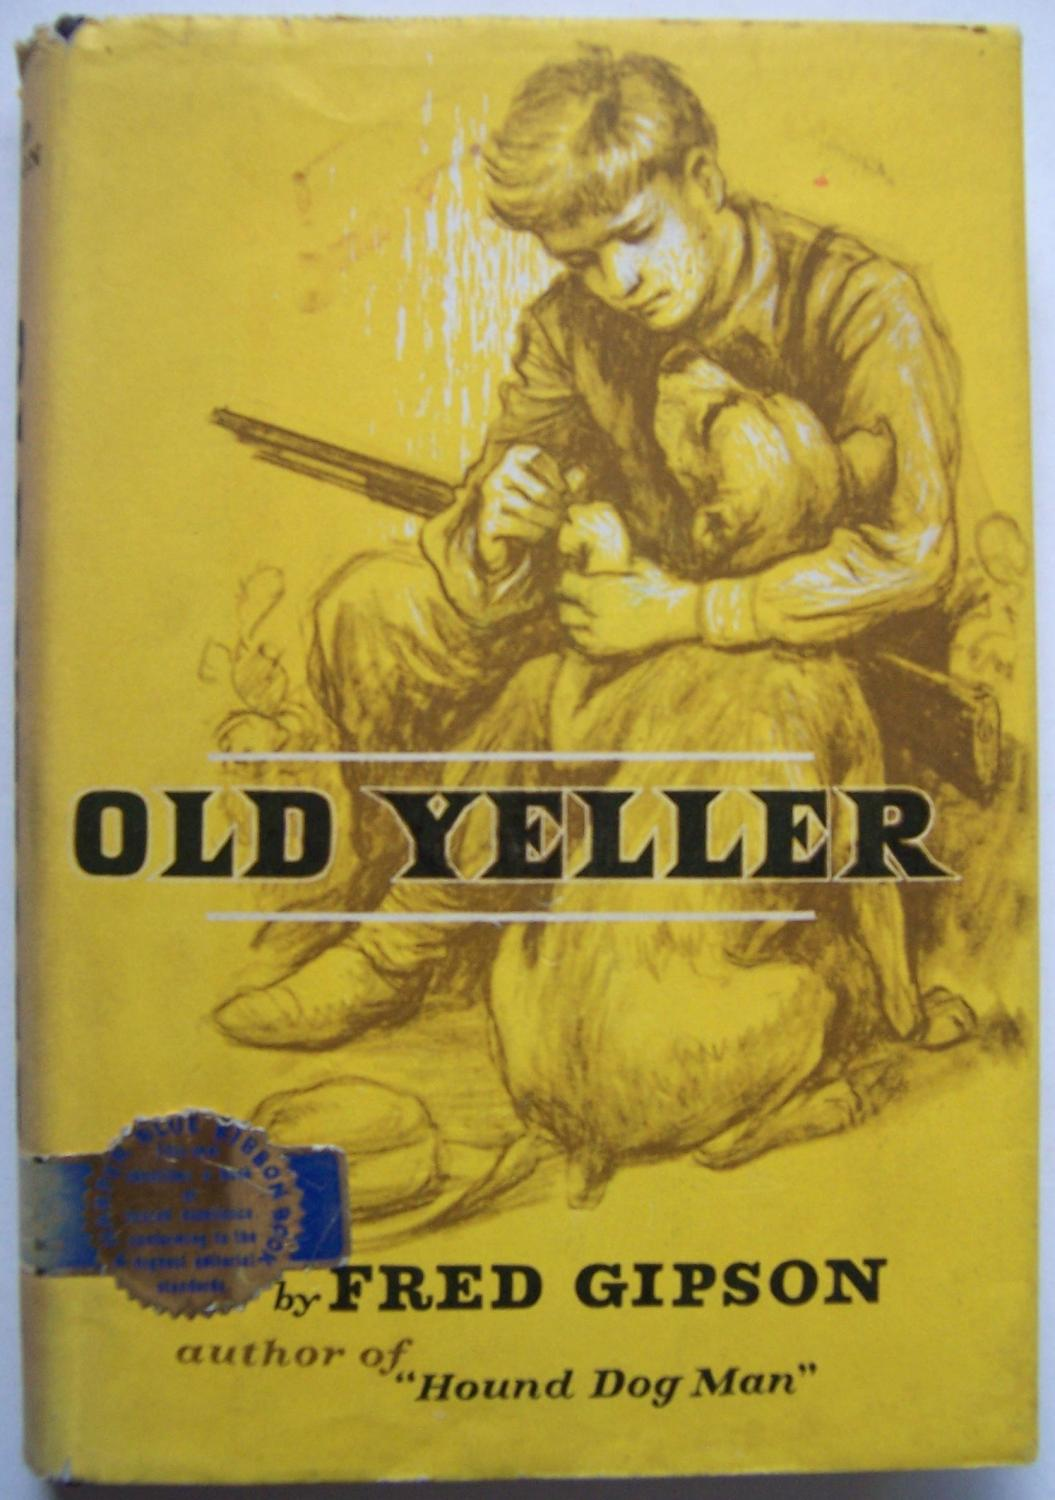 an analysis of the book old yeller by fred gipson An overview and plot summary of old yeller by fred gipson study guide includes comprehensive information and analysis to help you understand the book.